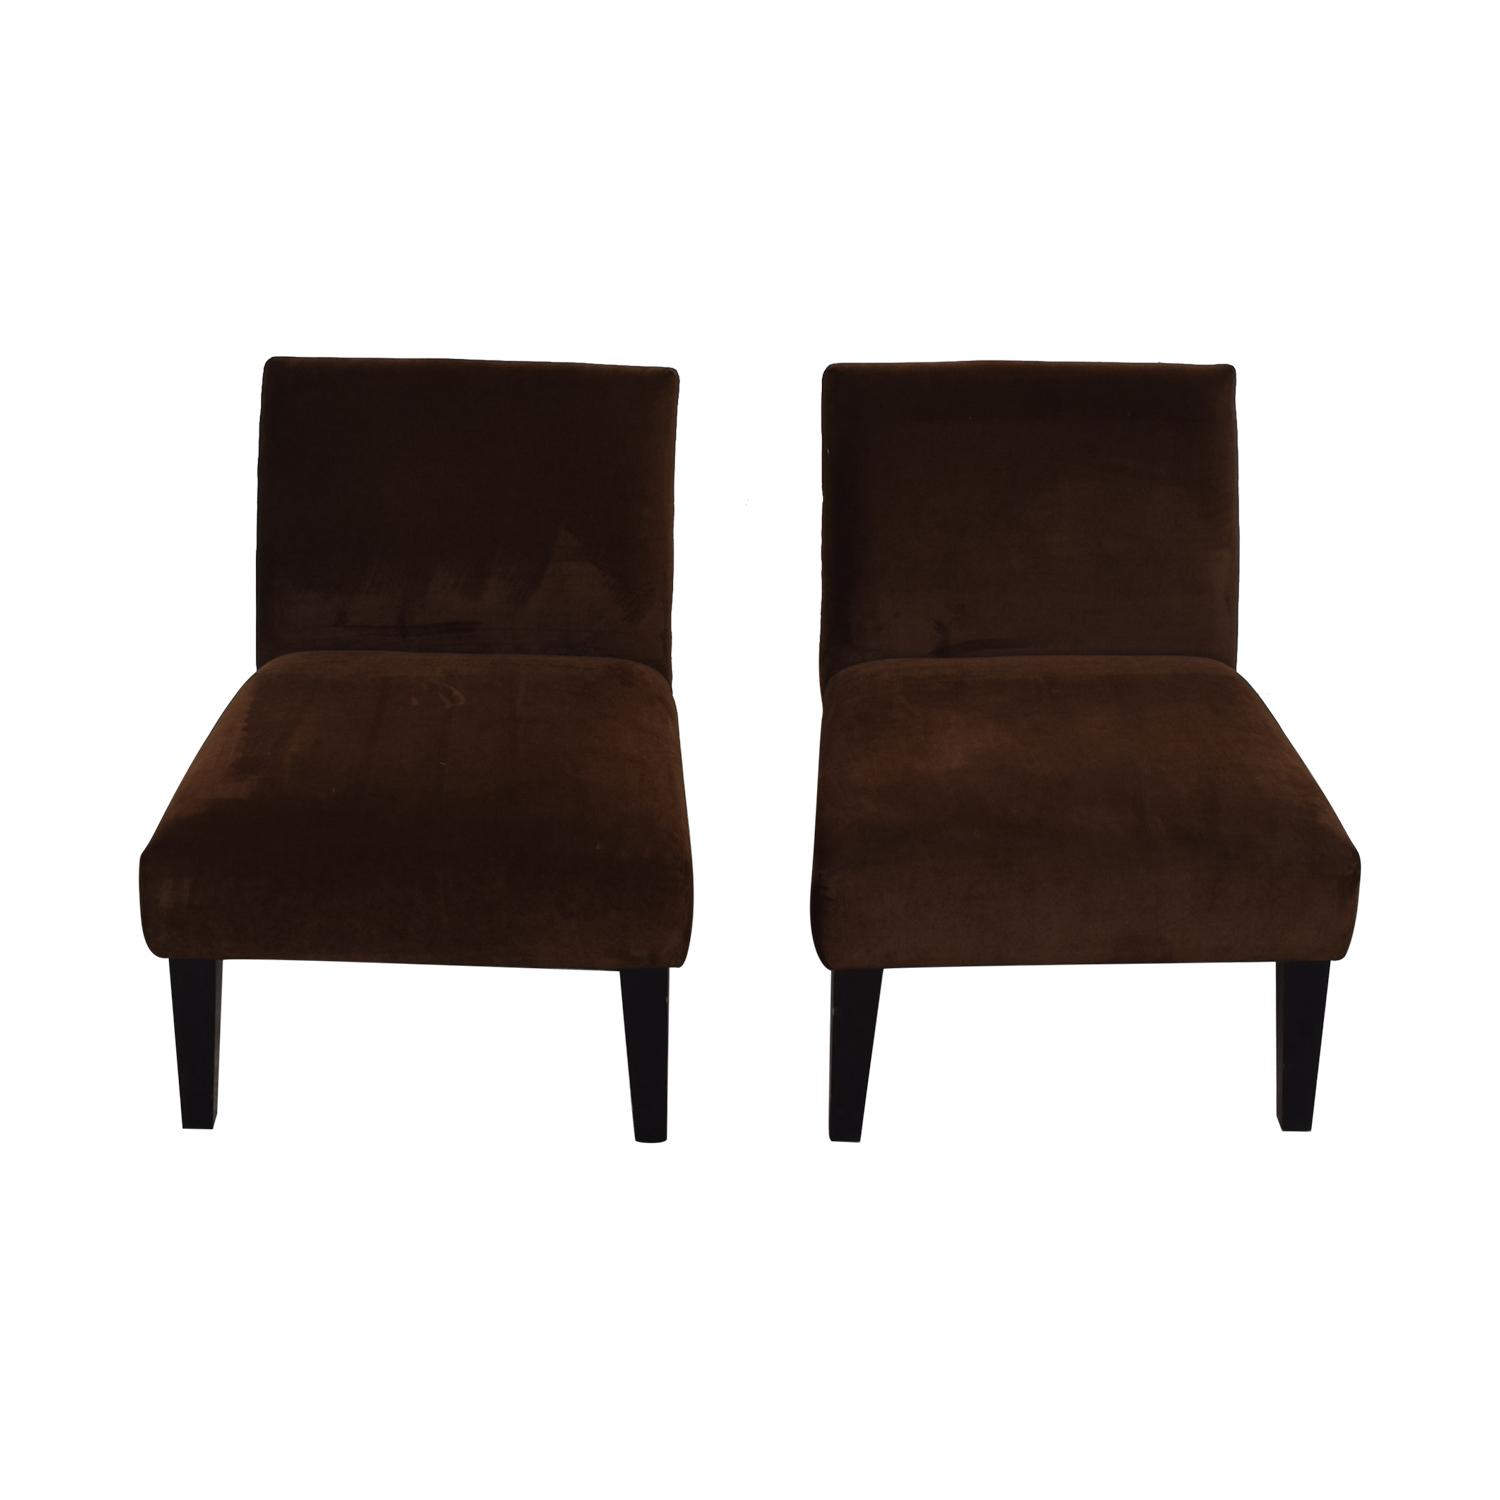 Brown Armless Side Chairs used